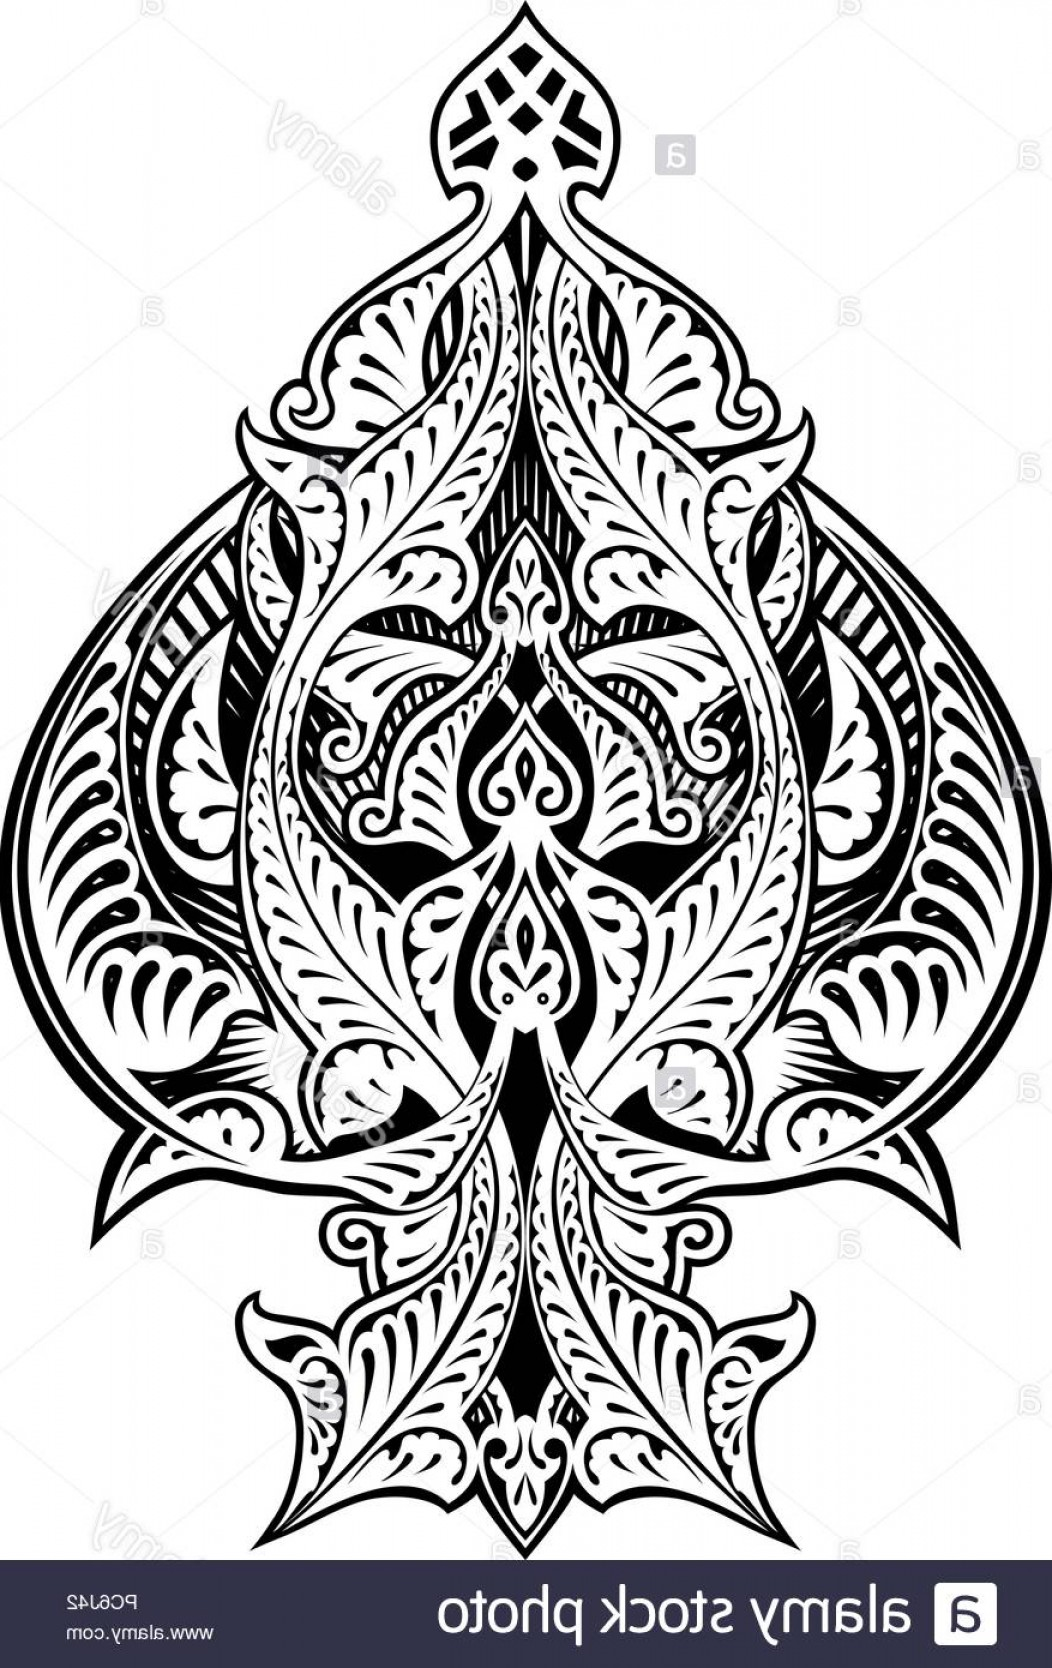 Spades Vector Art: Ace Of Spades Icon Shape Abstract Pattern Image